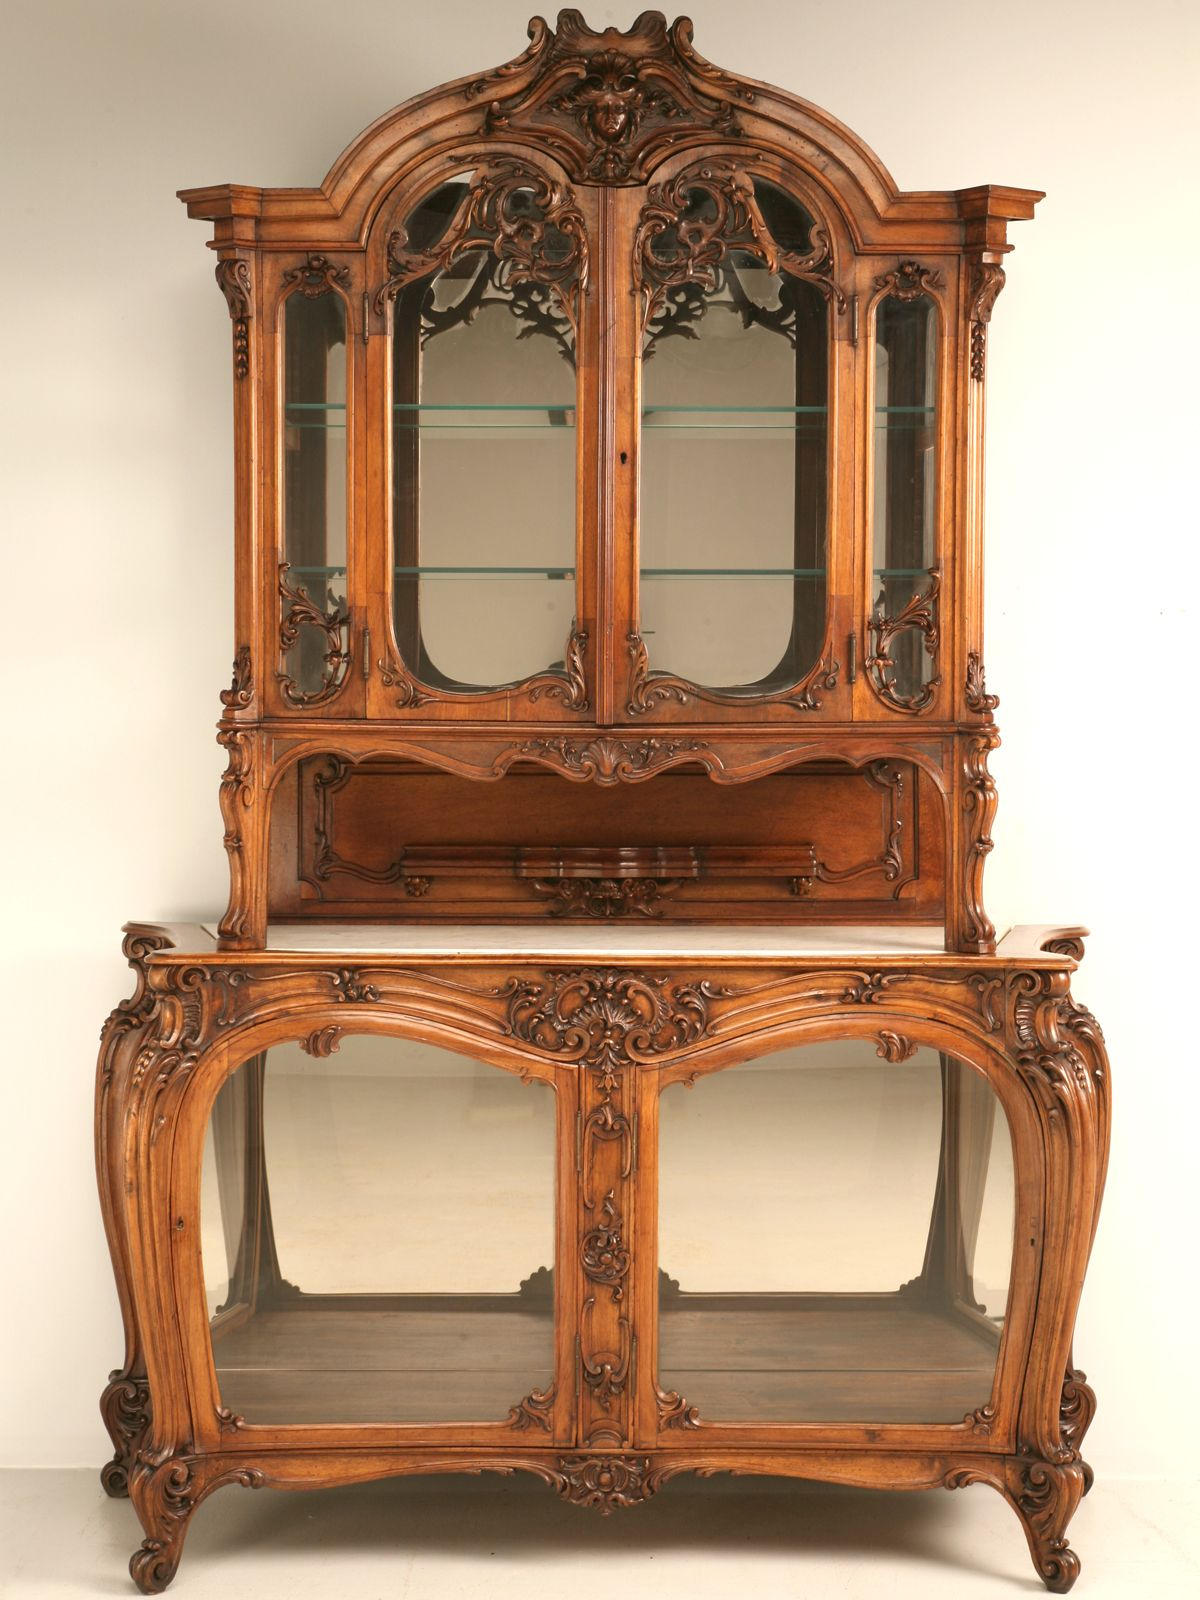 Meubles Antiques France France Circa 1900 Antique French Walnut Art Nouveau China Cabinet